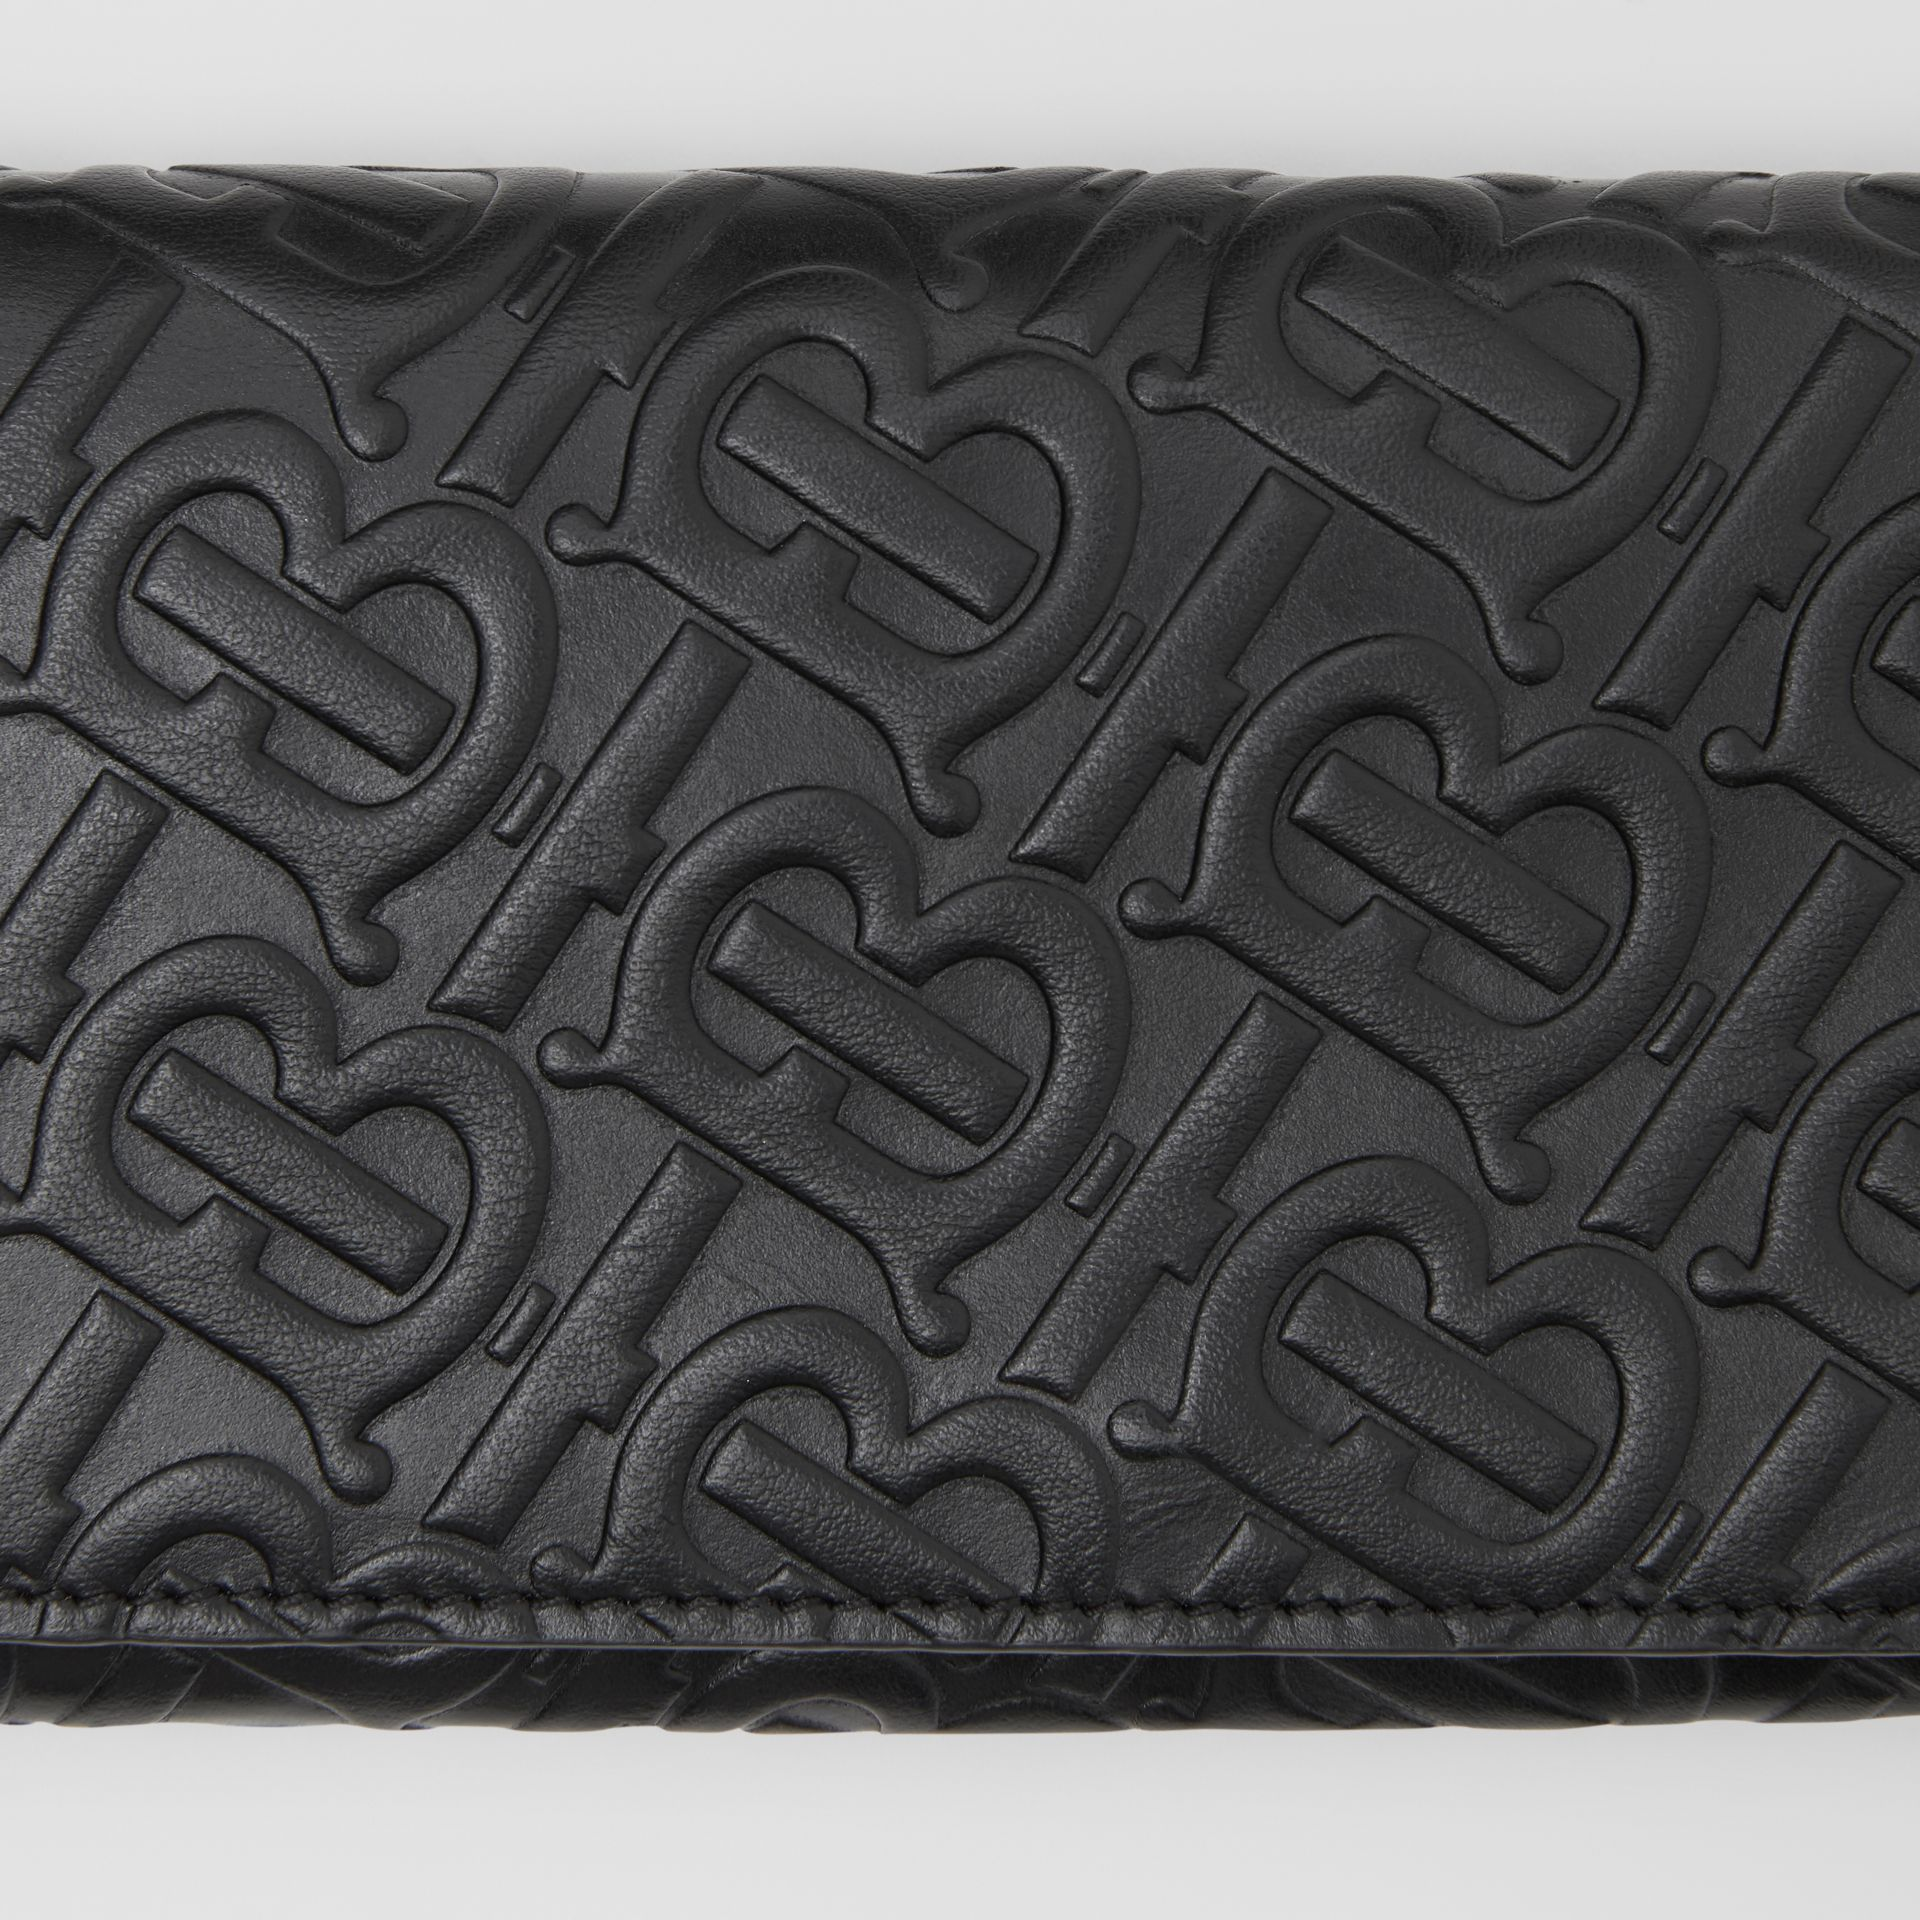 Monogram Leather Continental Wallet in Black - Women | Burberry - gallery image 1